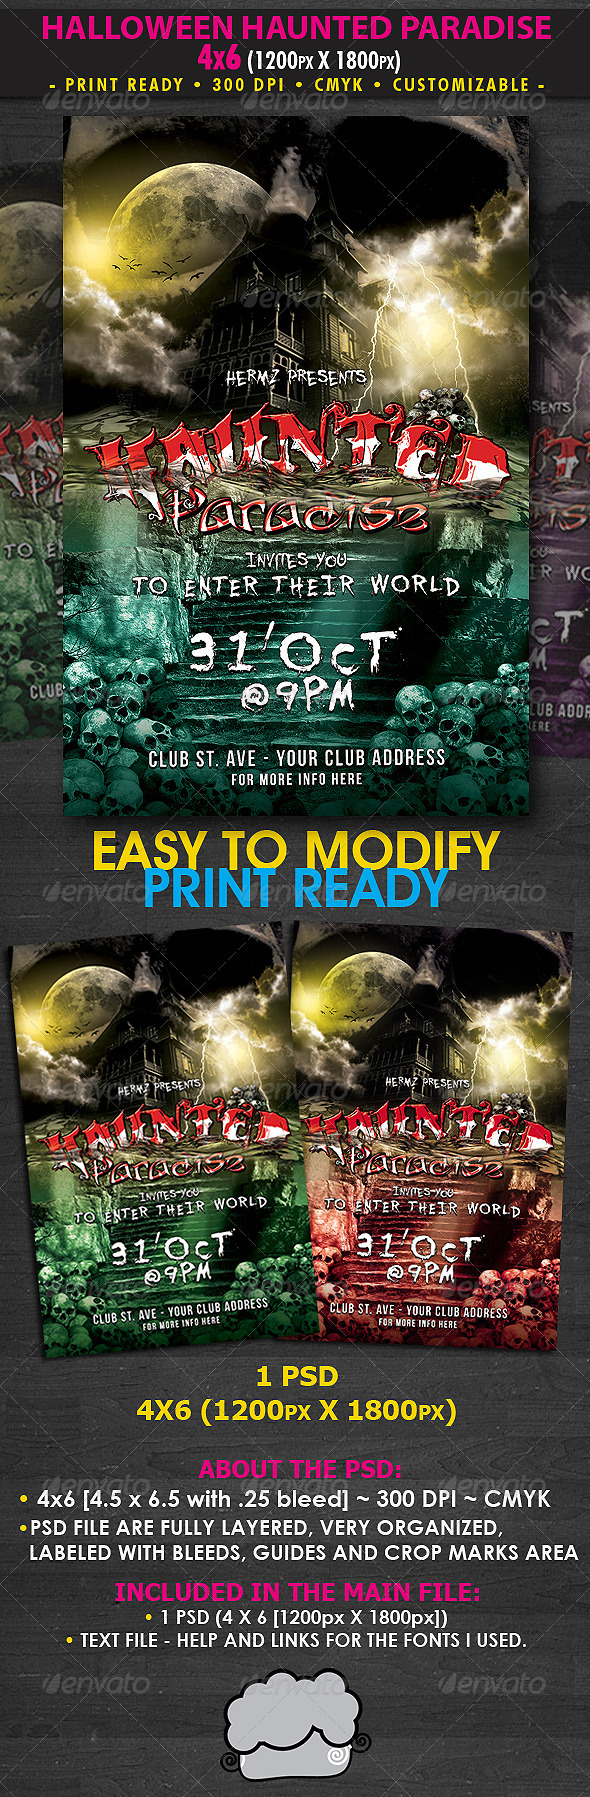 Halloween Haunted Paradise Flyer Template - Clubs & Parties Events